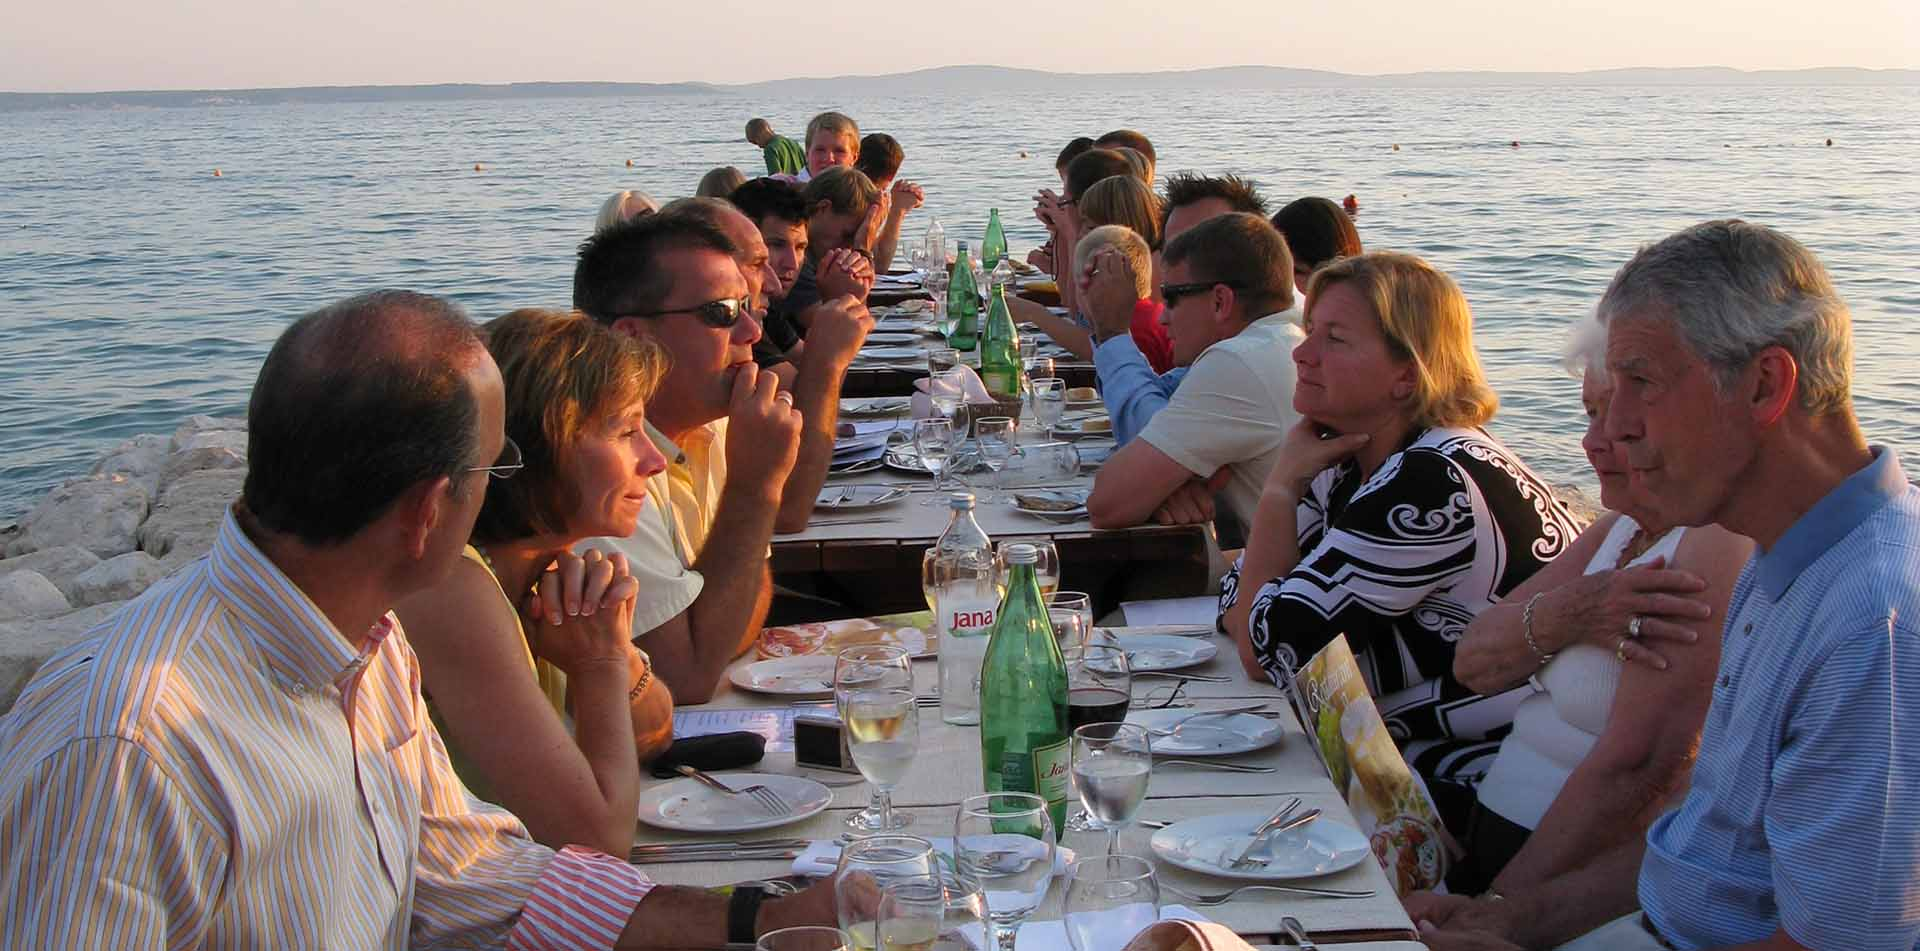 Europe Croatia Dalmatian Coast group eating dinner beautiful waterfront sunset - luxury vacation destinations